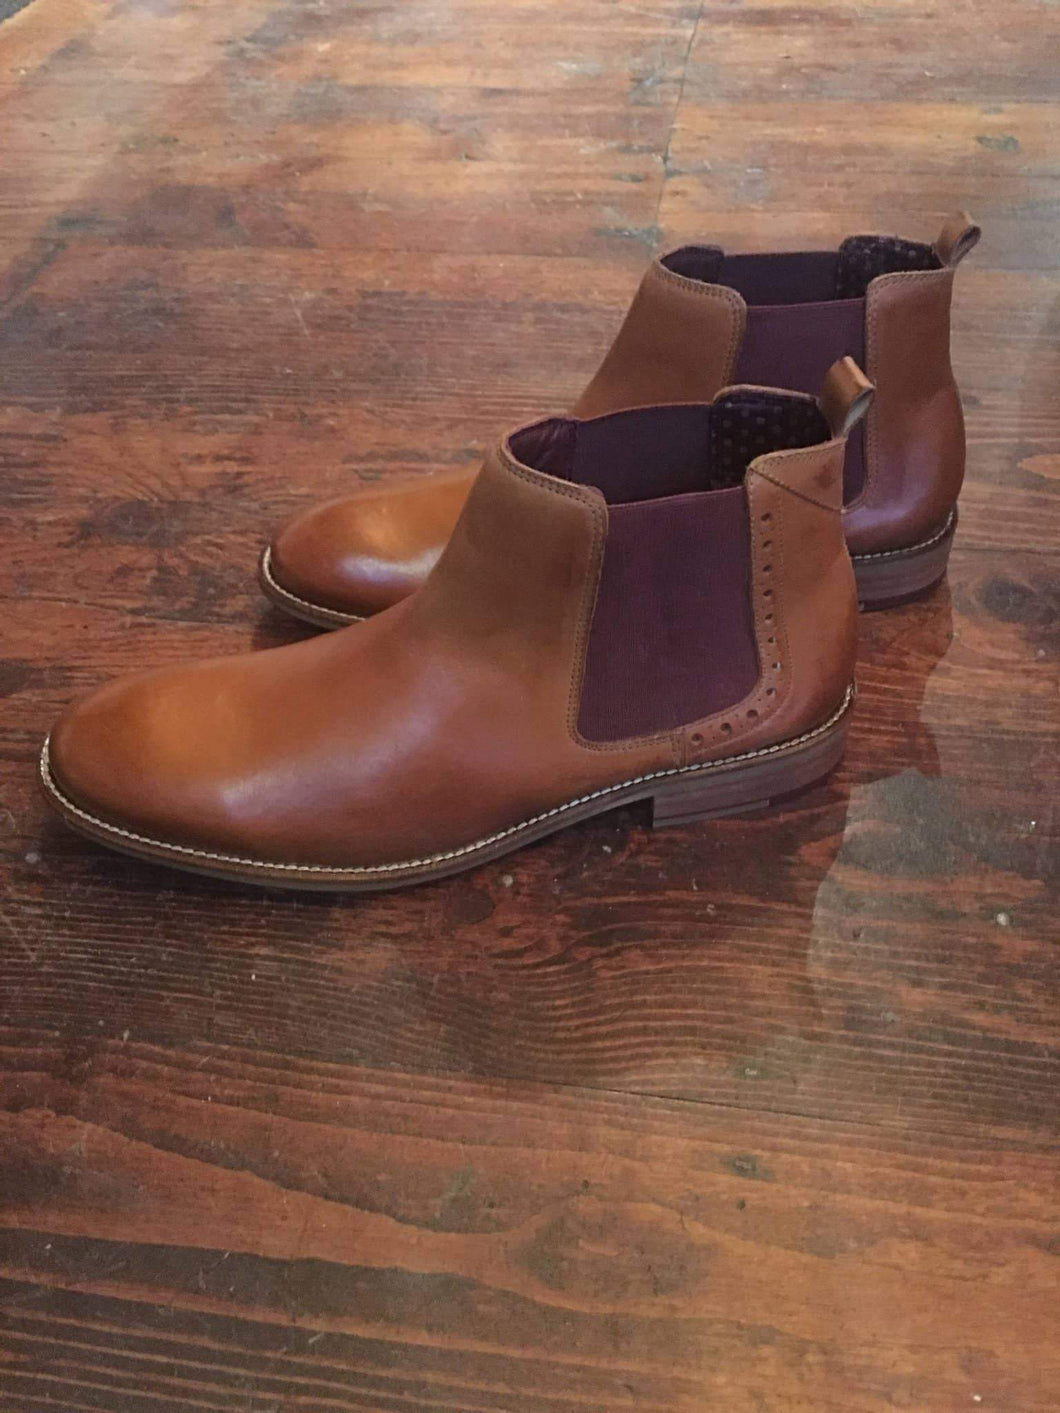 London Brogues Gatsby Tan Chelsea Boot With Hole Punch Detail 7